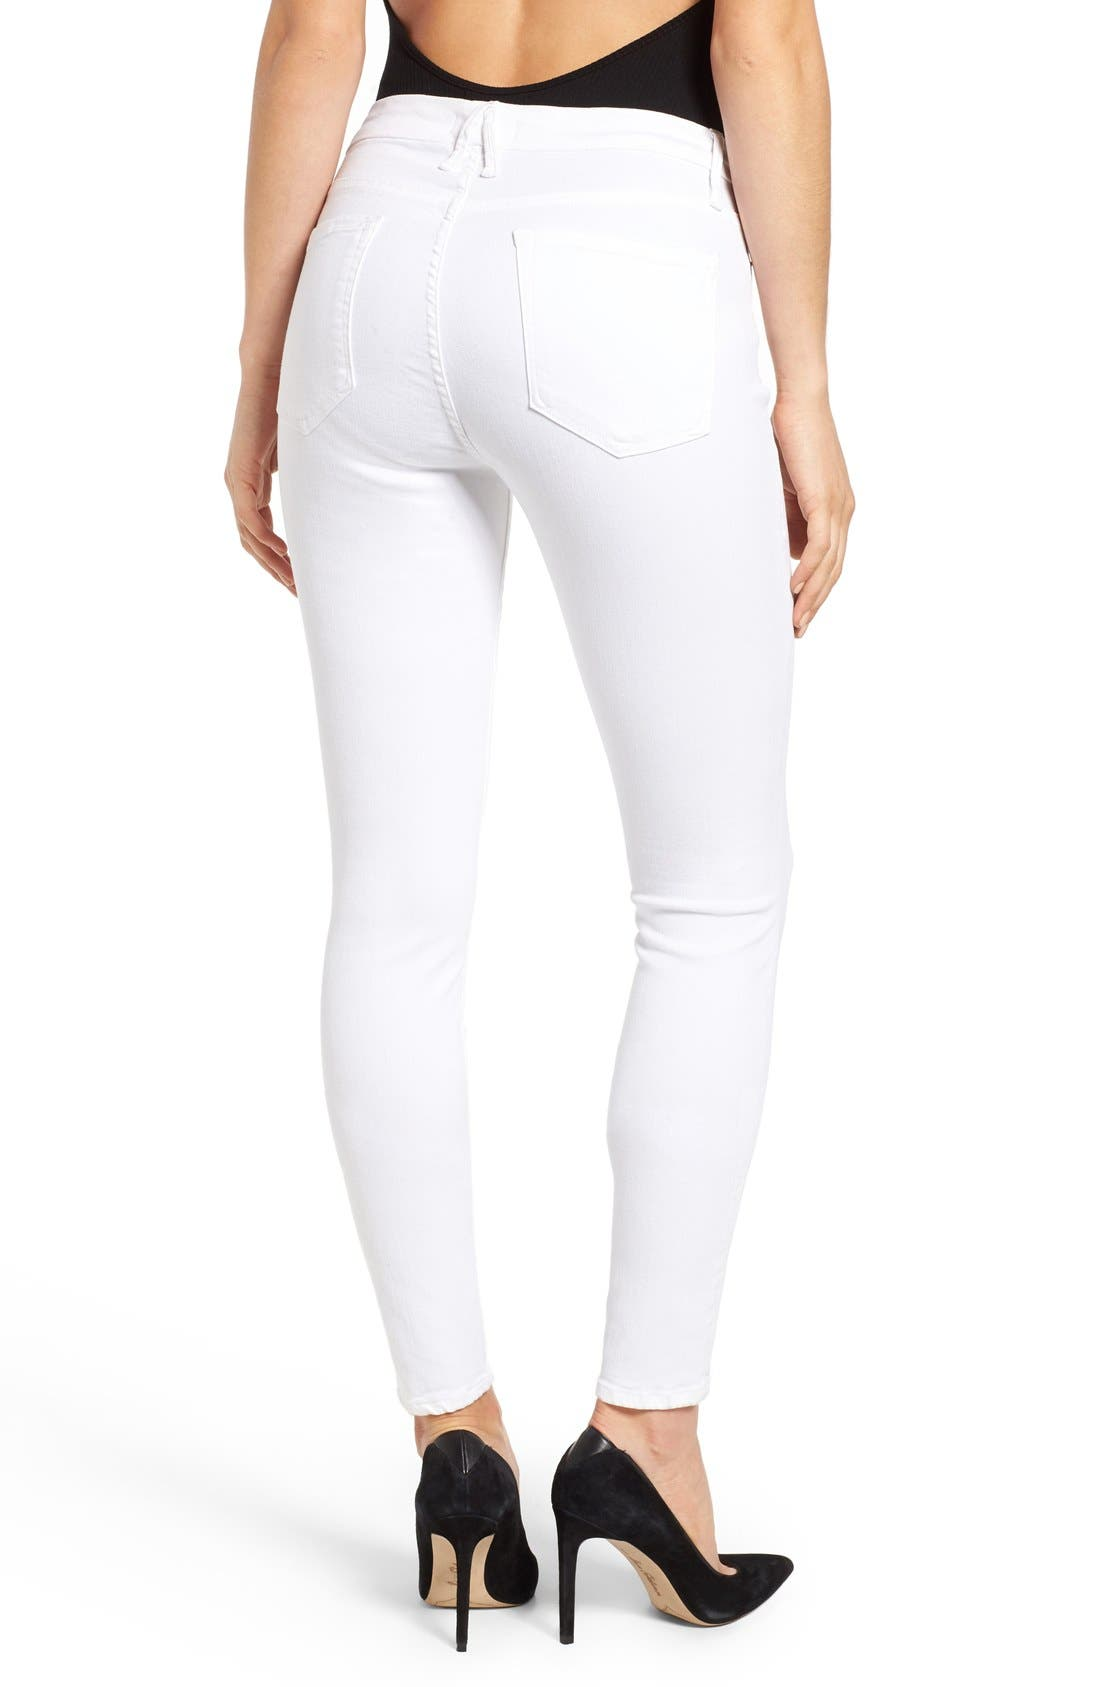 Alternate Image 2  - Good American Good Legs High Rise Skinny Jeans (White 001) (Extended Sizes)